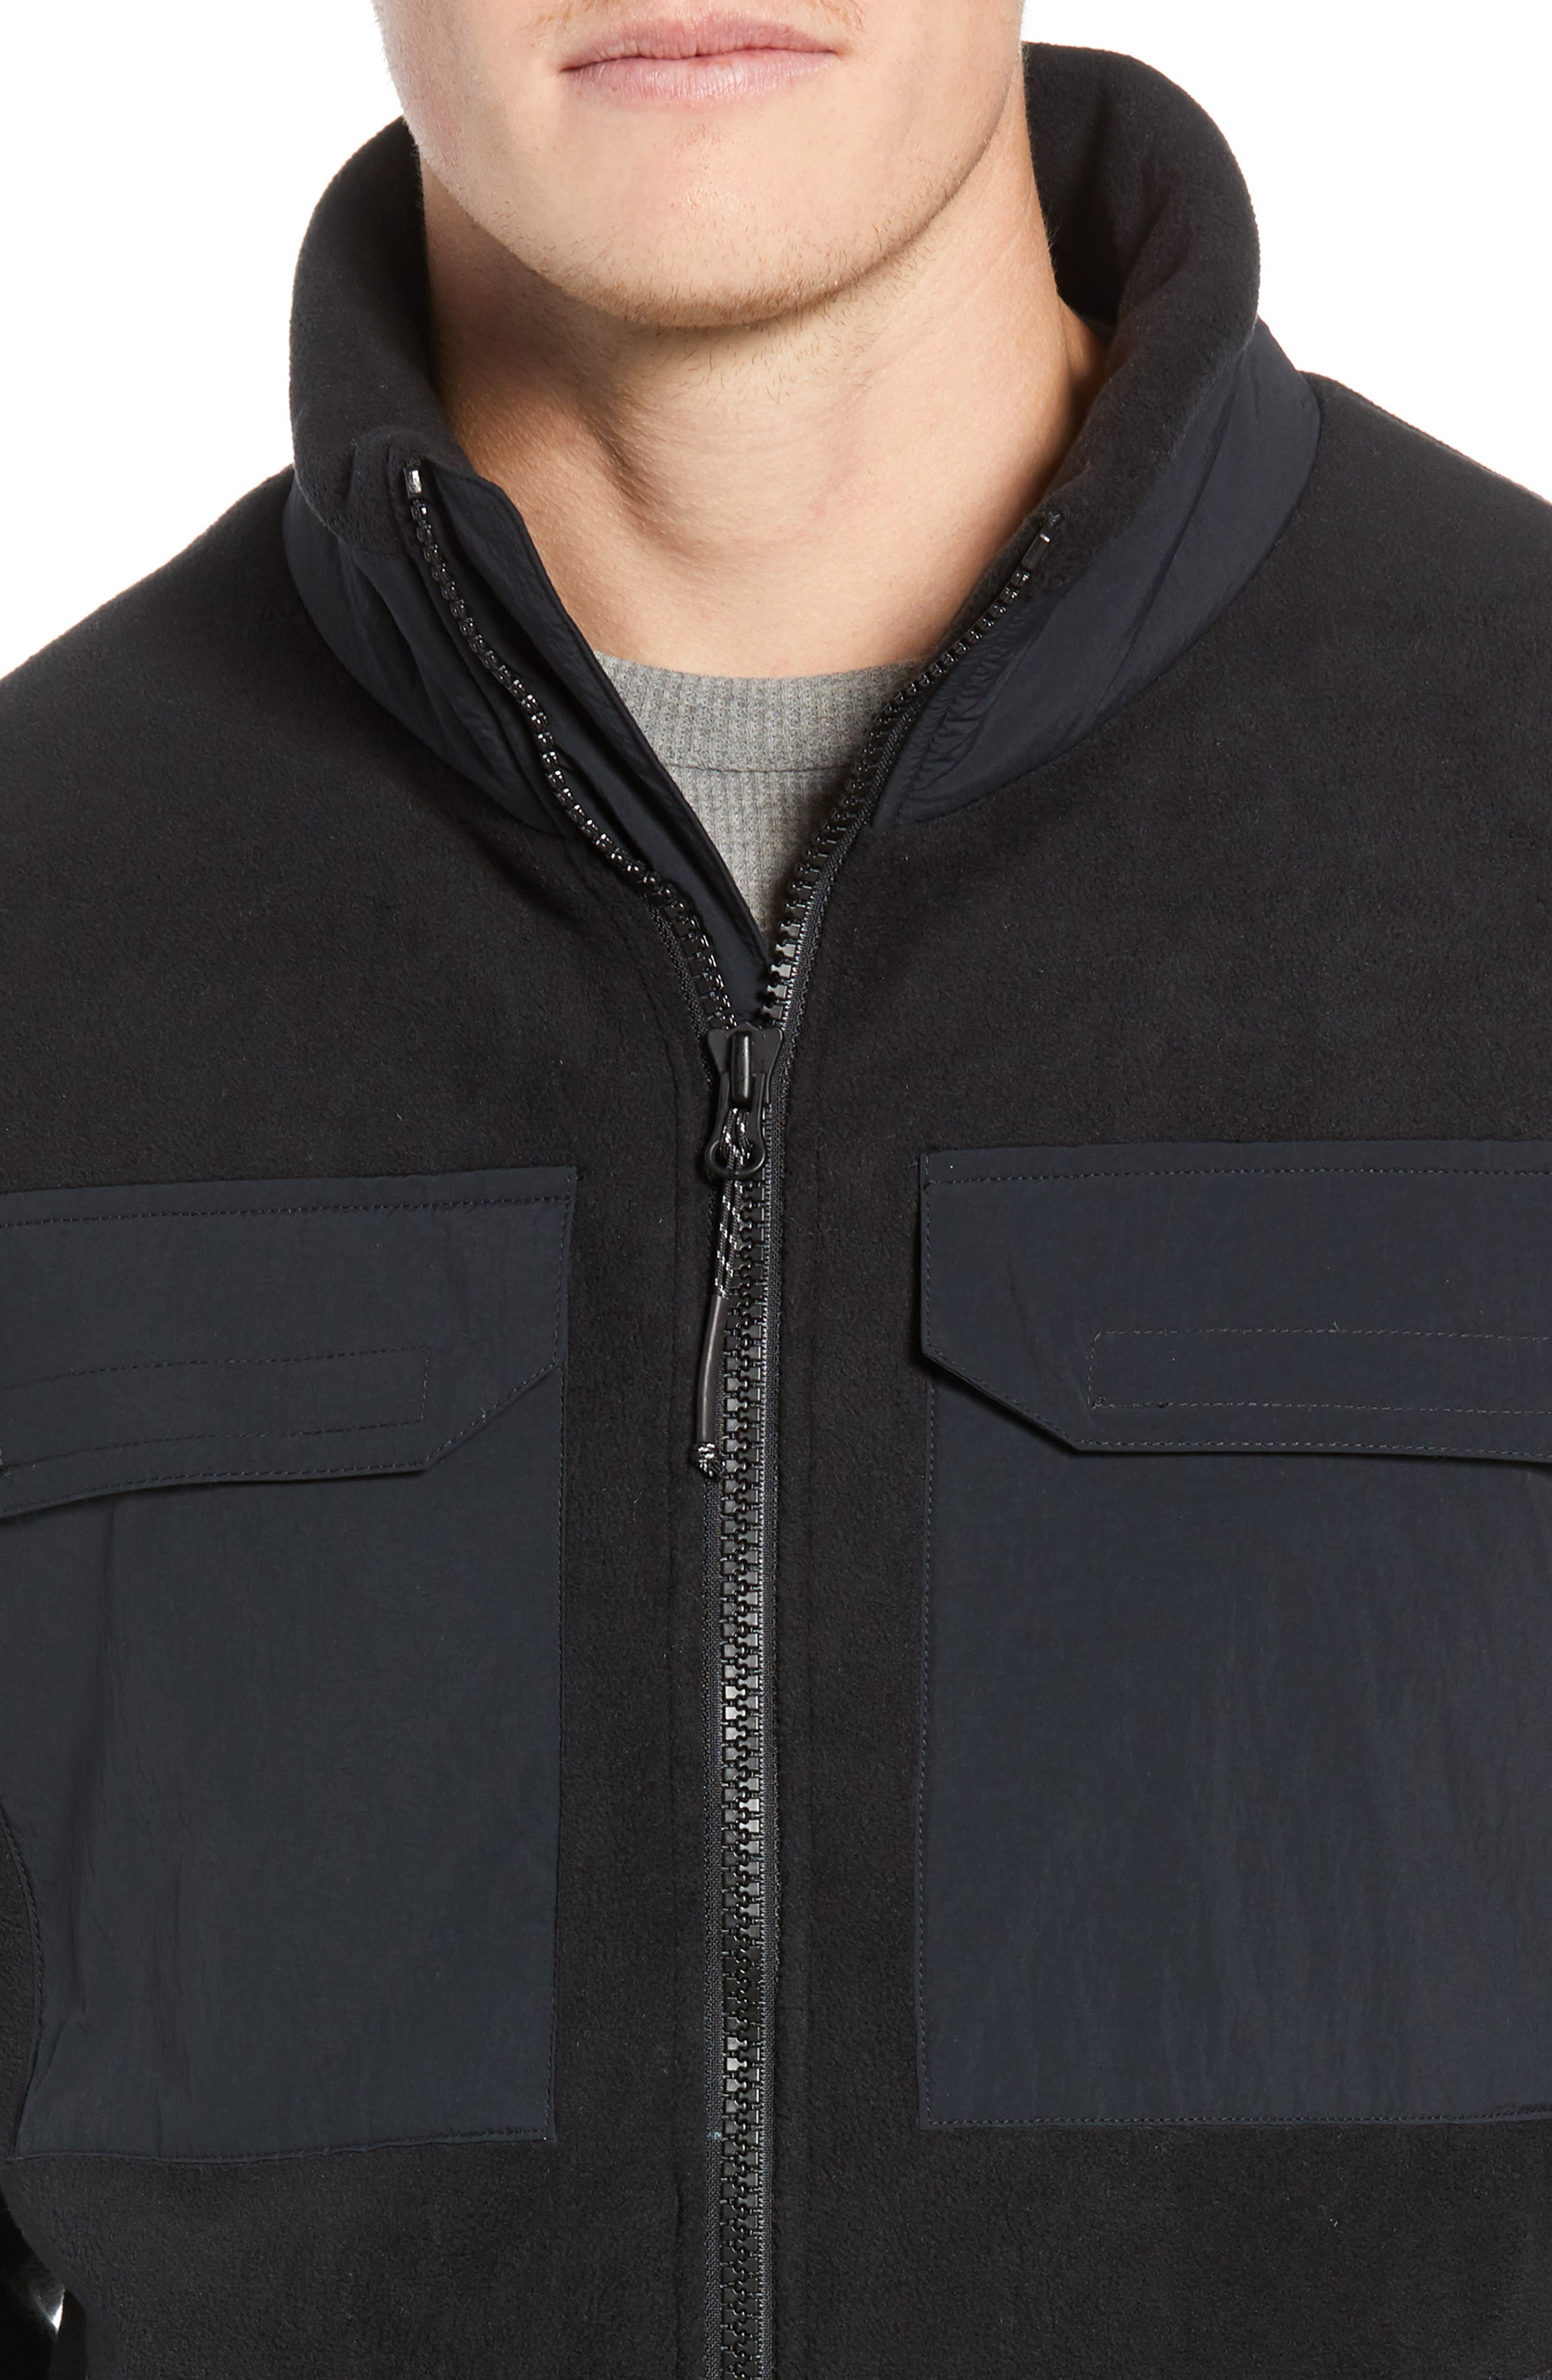 Schoening Zip Fleece Jacket,                             Alternate thumbnail 4, color,                             BLACK